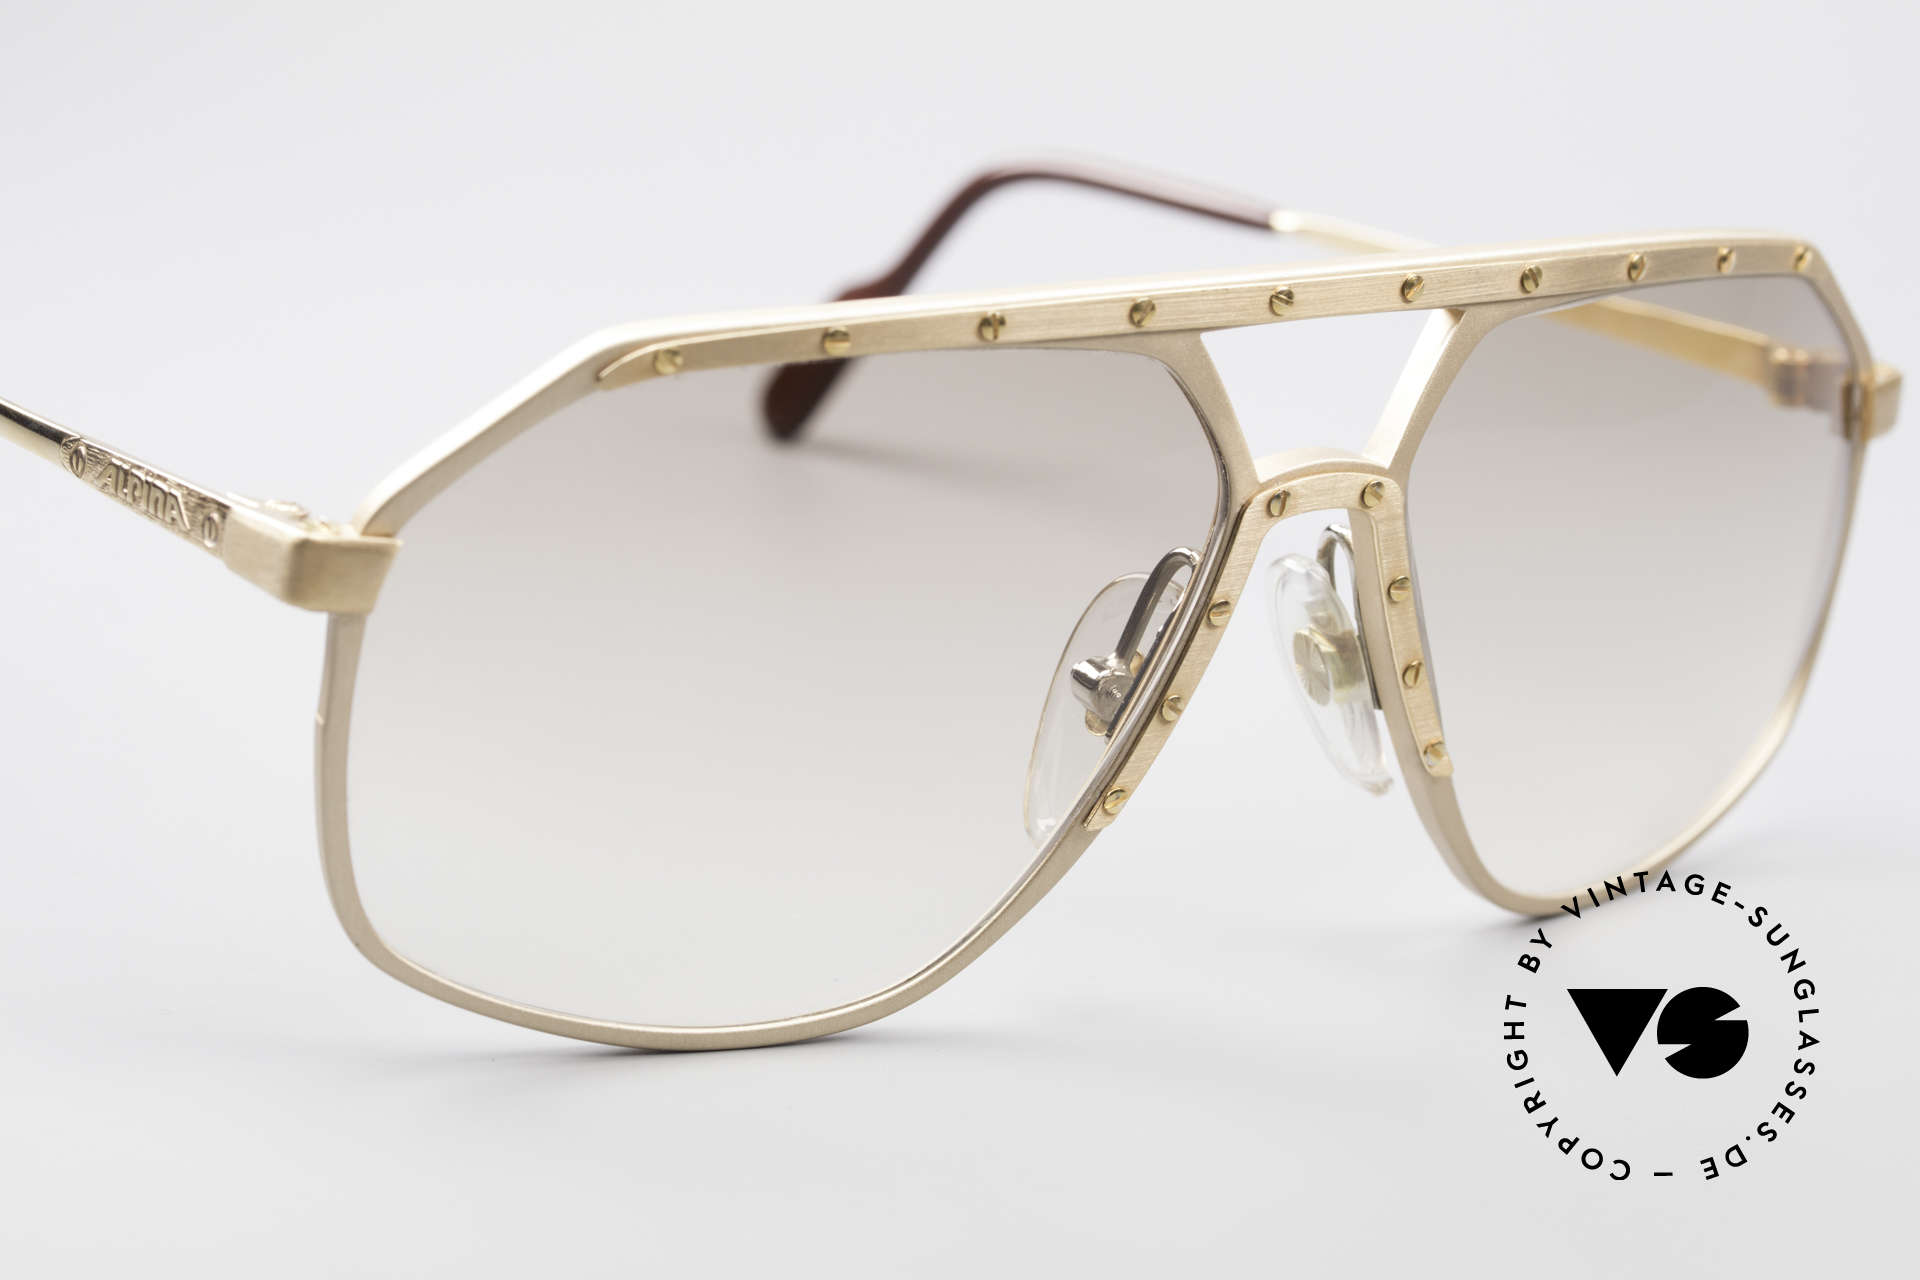 Alpina M6 Legendary 80's Sunglasses, very light tinted sun lenses; also wearable at night, Made for Men